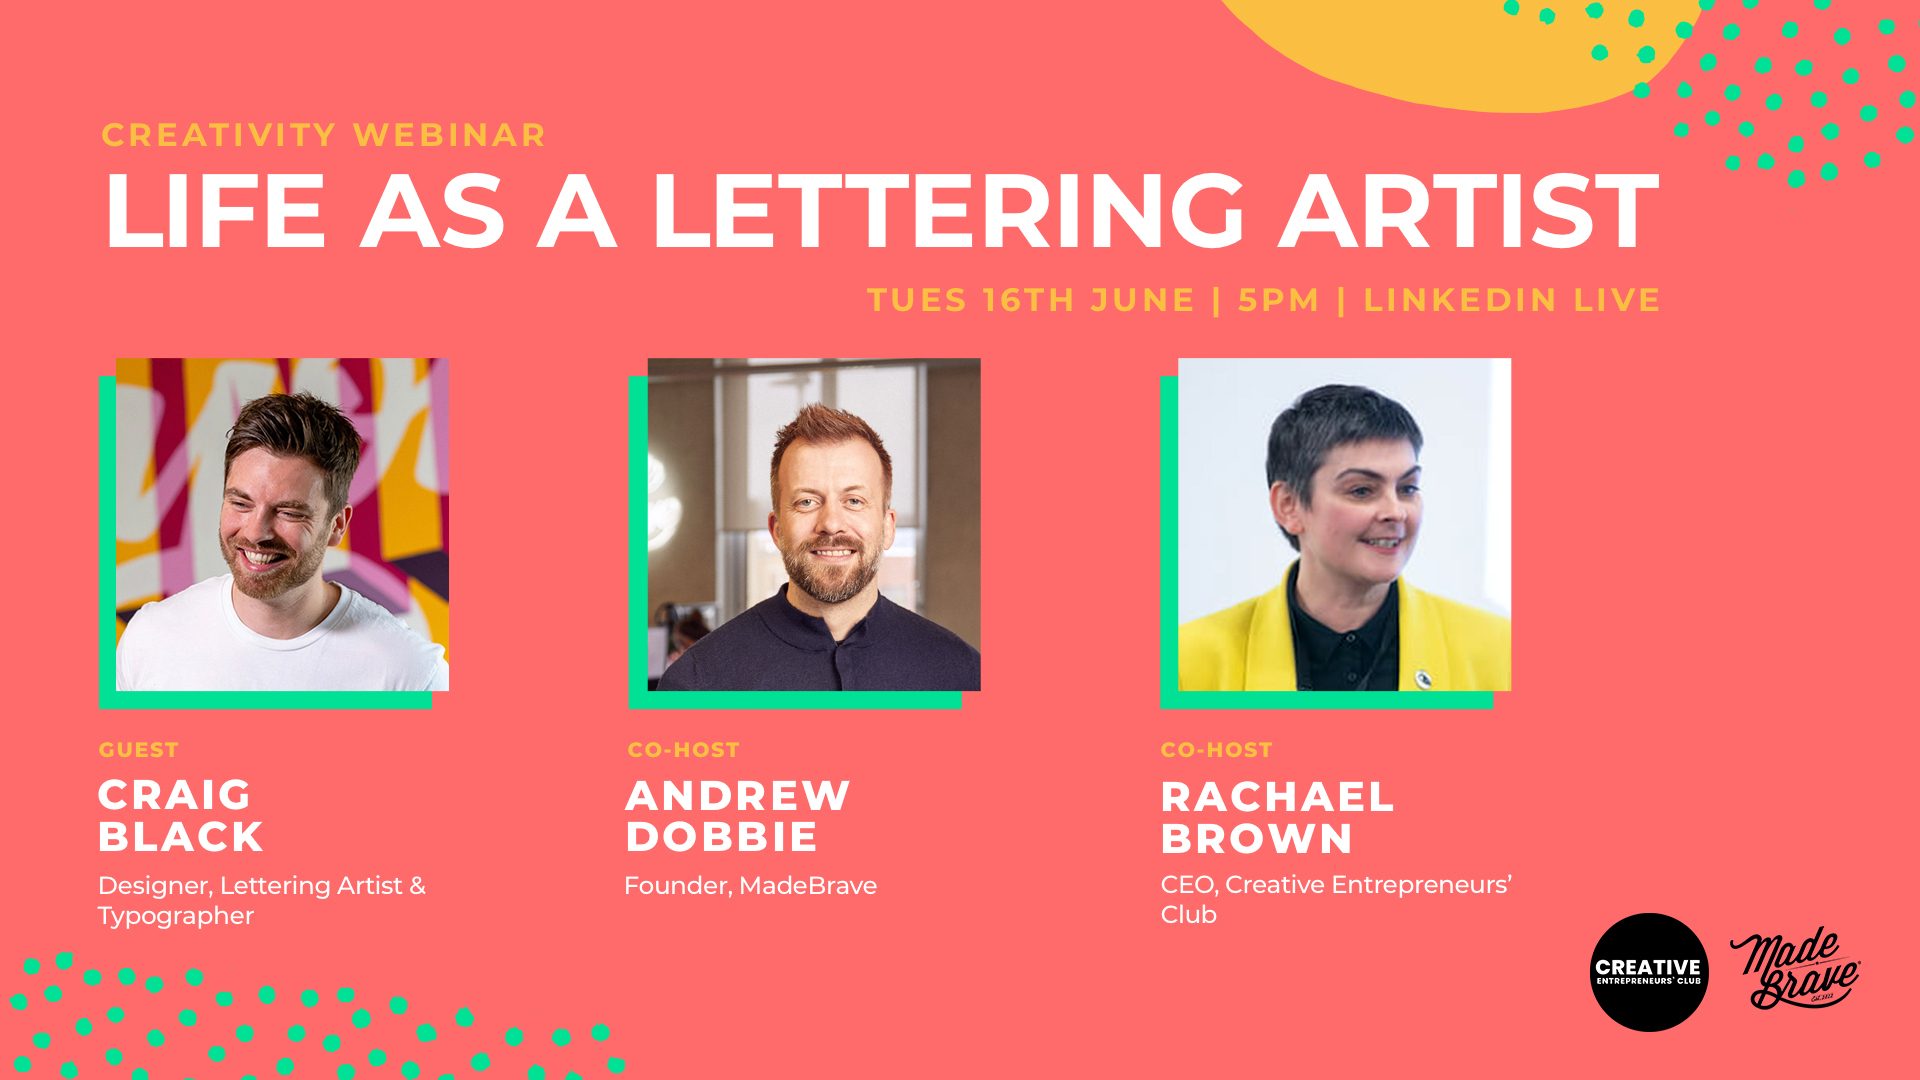 Life as a lettering artist with Craig Black & MadeBrave